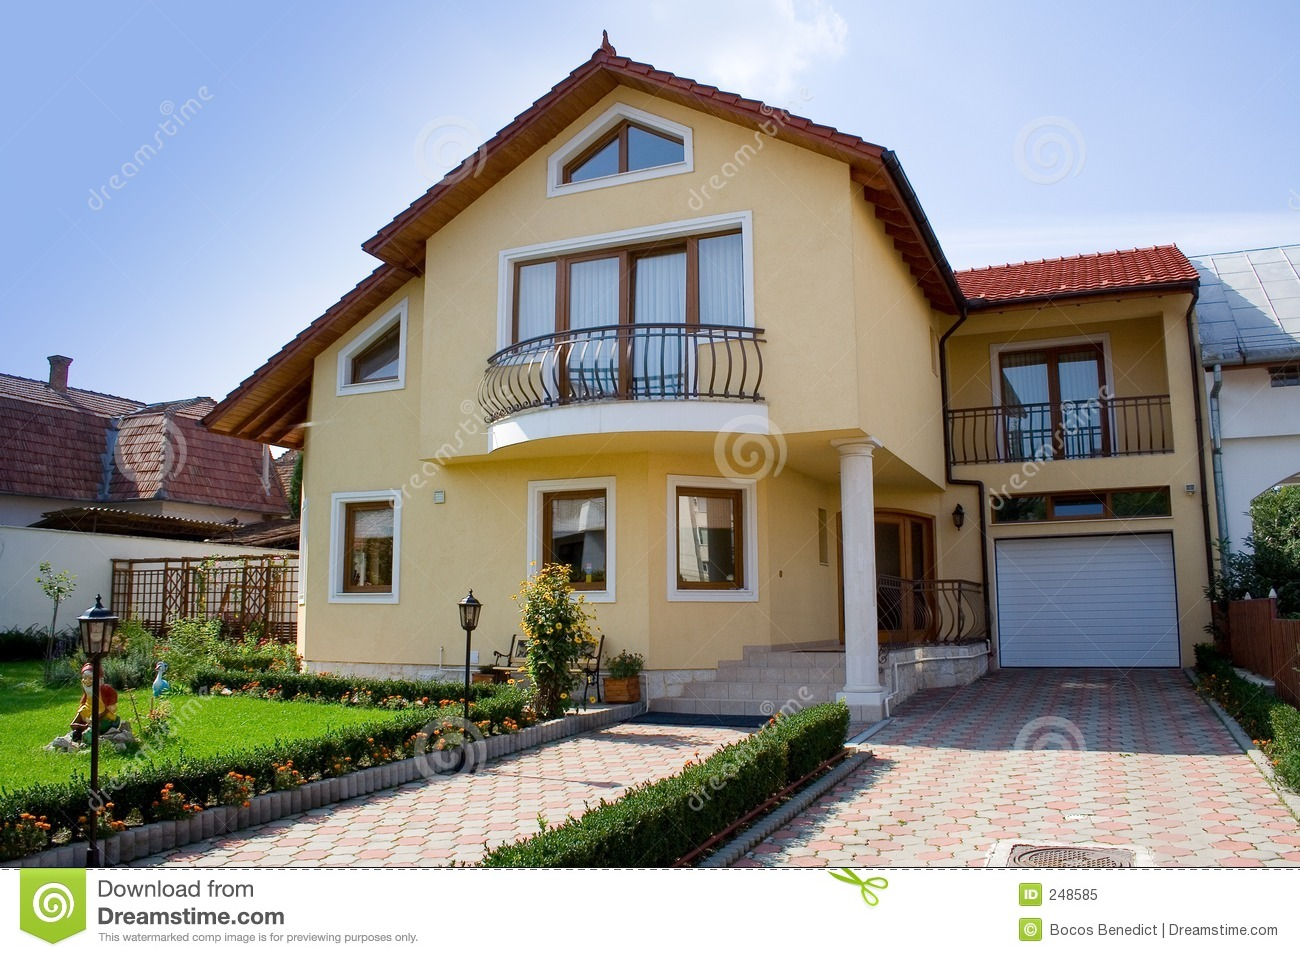 Small villa royalty free stock photo image 248585 for Petite villa design